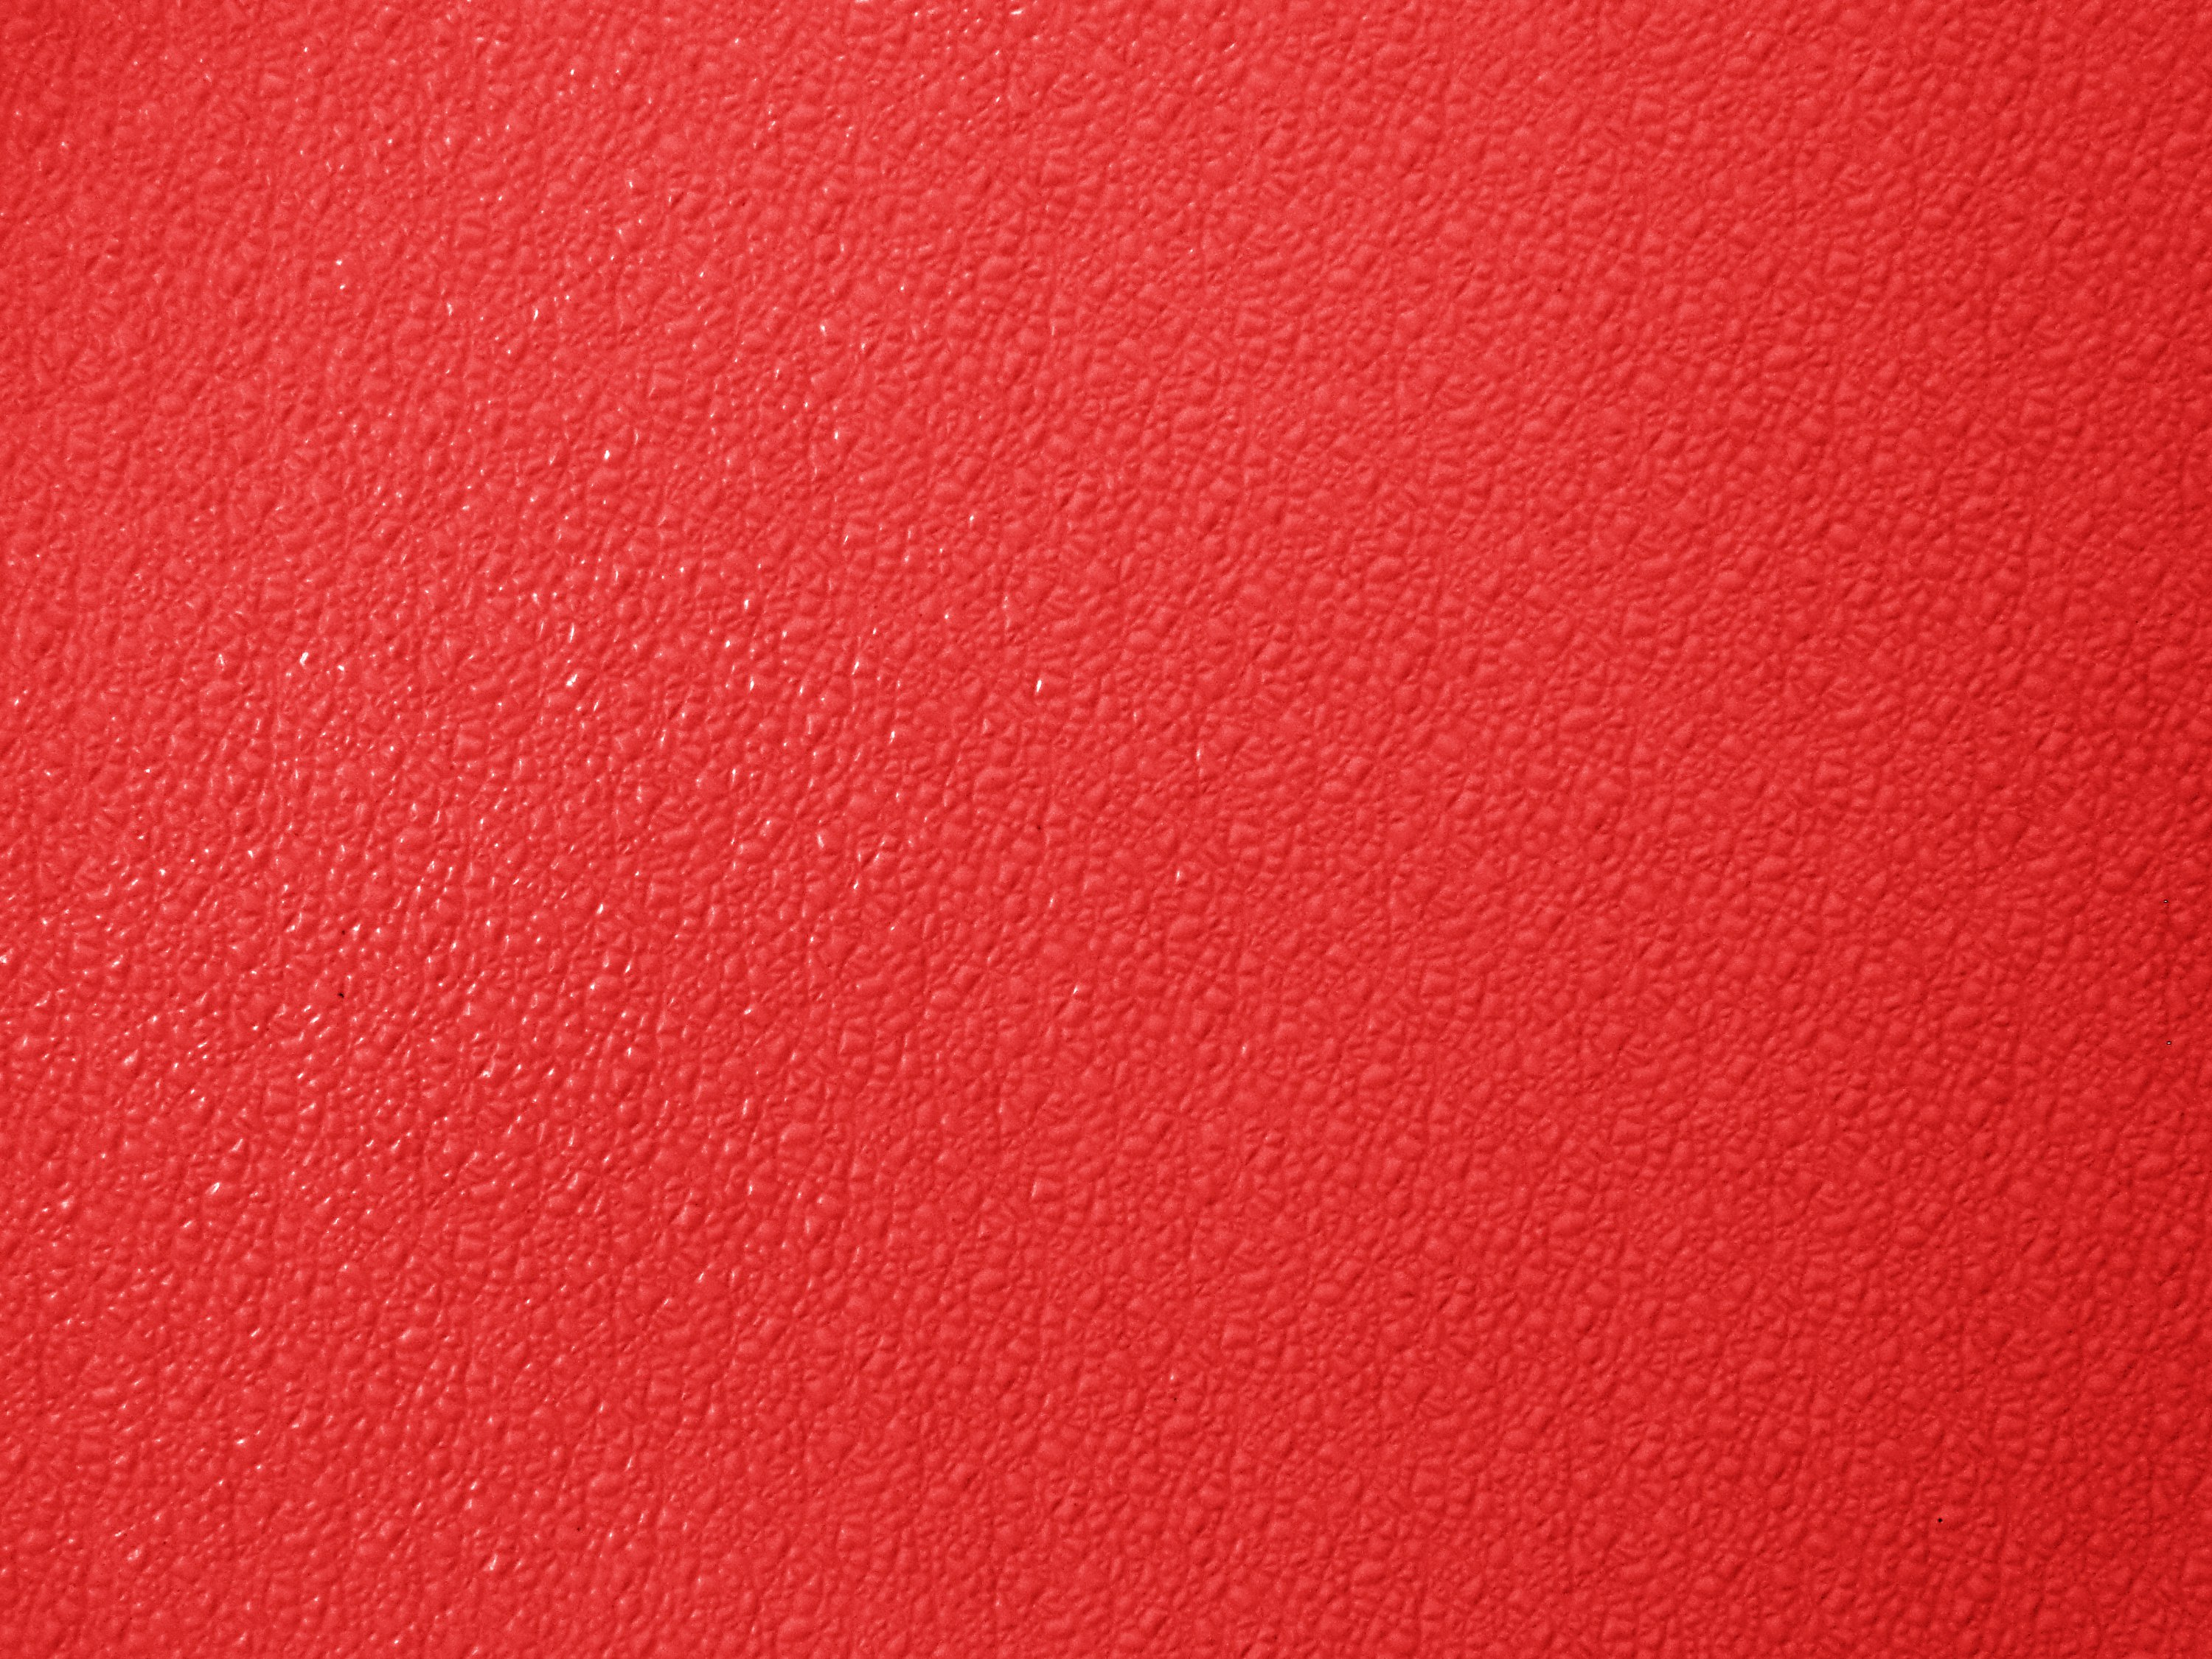 Bumpy Red Plastic Texture Picture Free Photograph